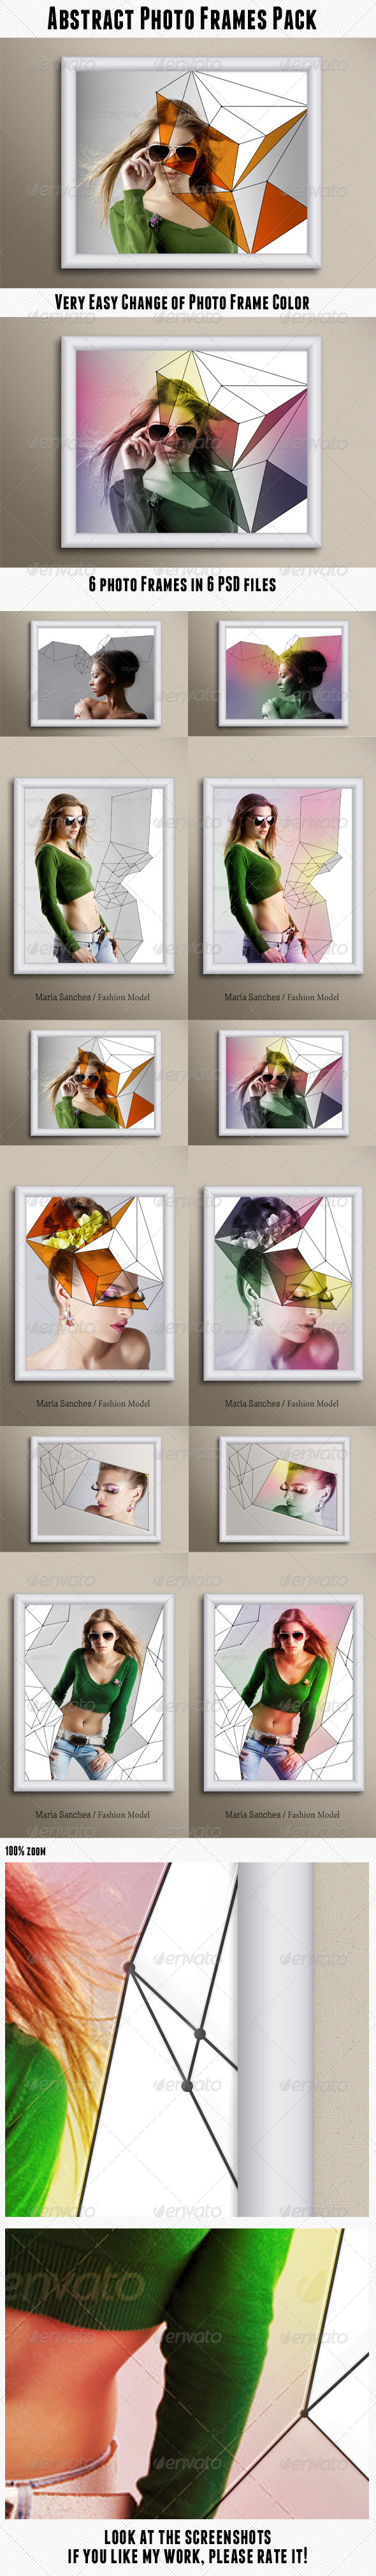 Abstract Photo Frames Pack - Artistic Photo Templates